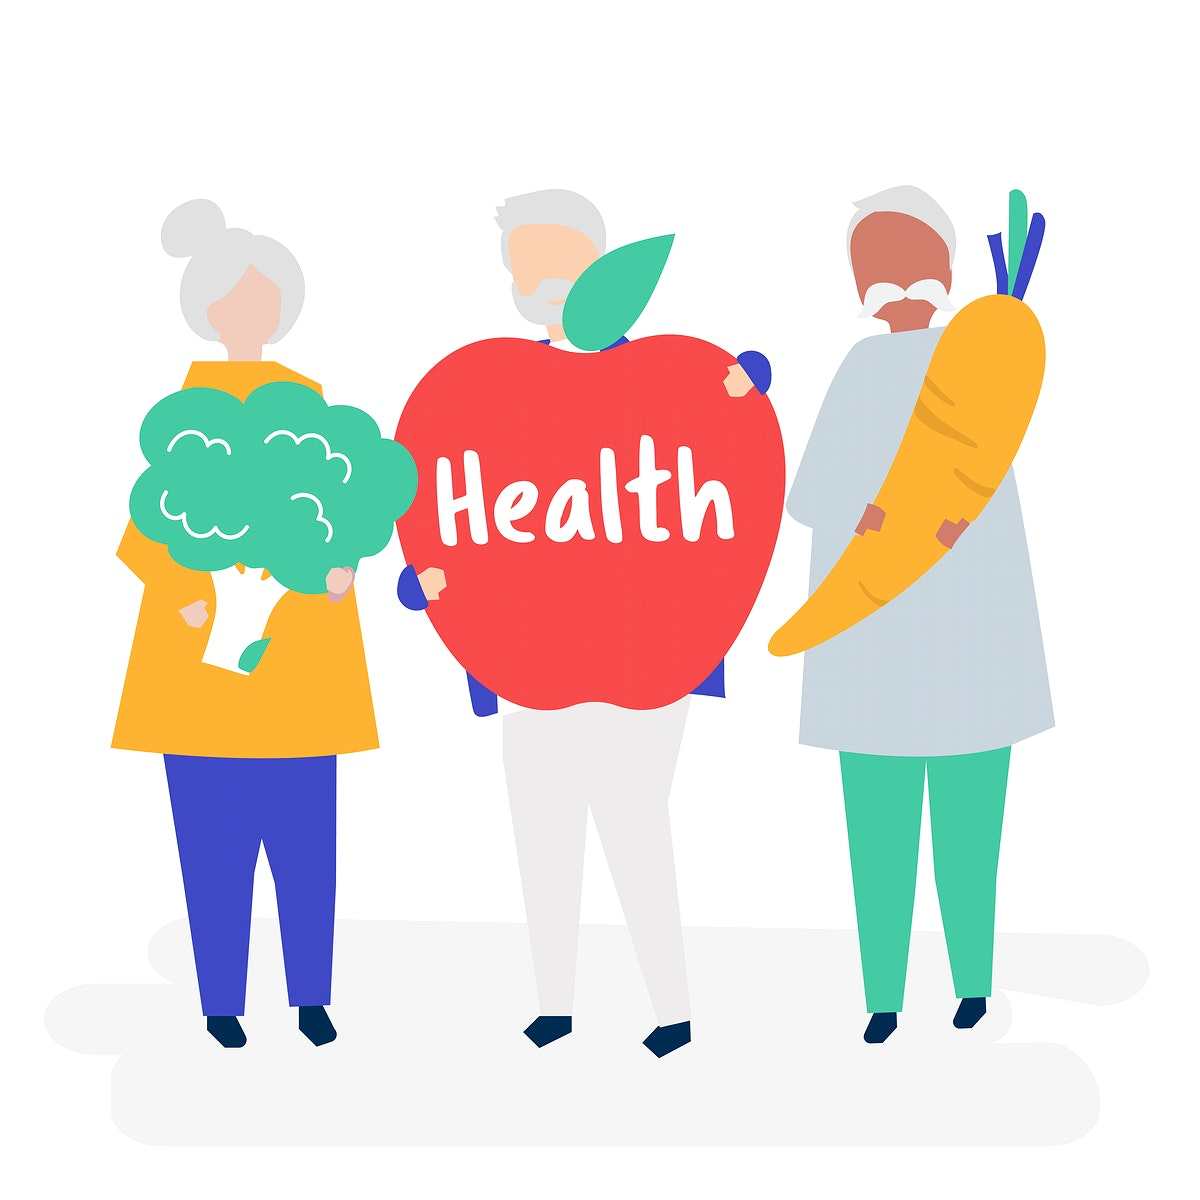 Characters of retired seniors and health concept illustration